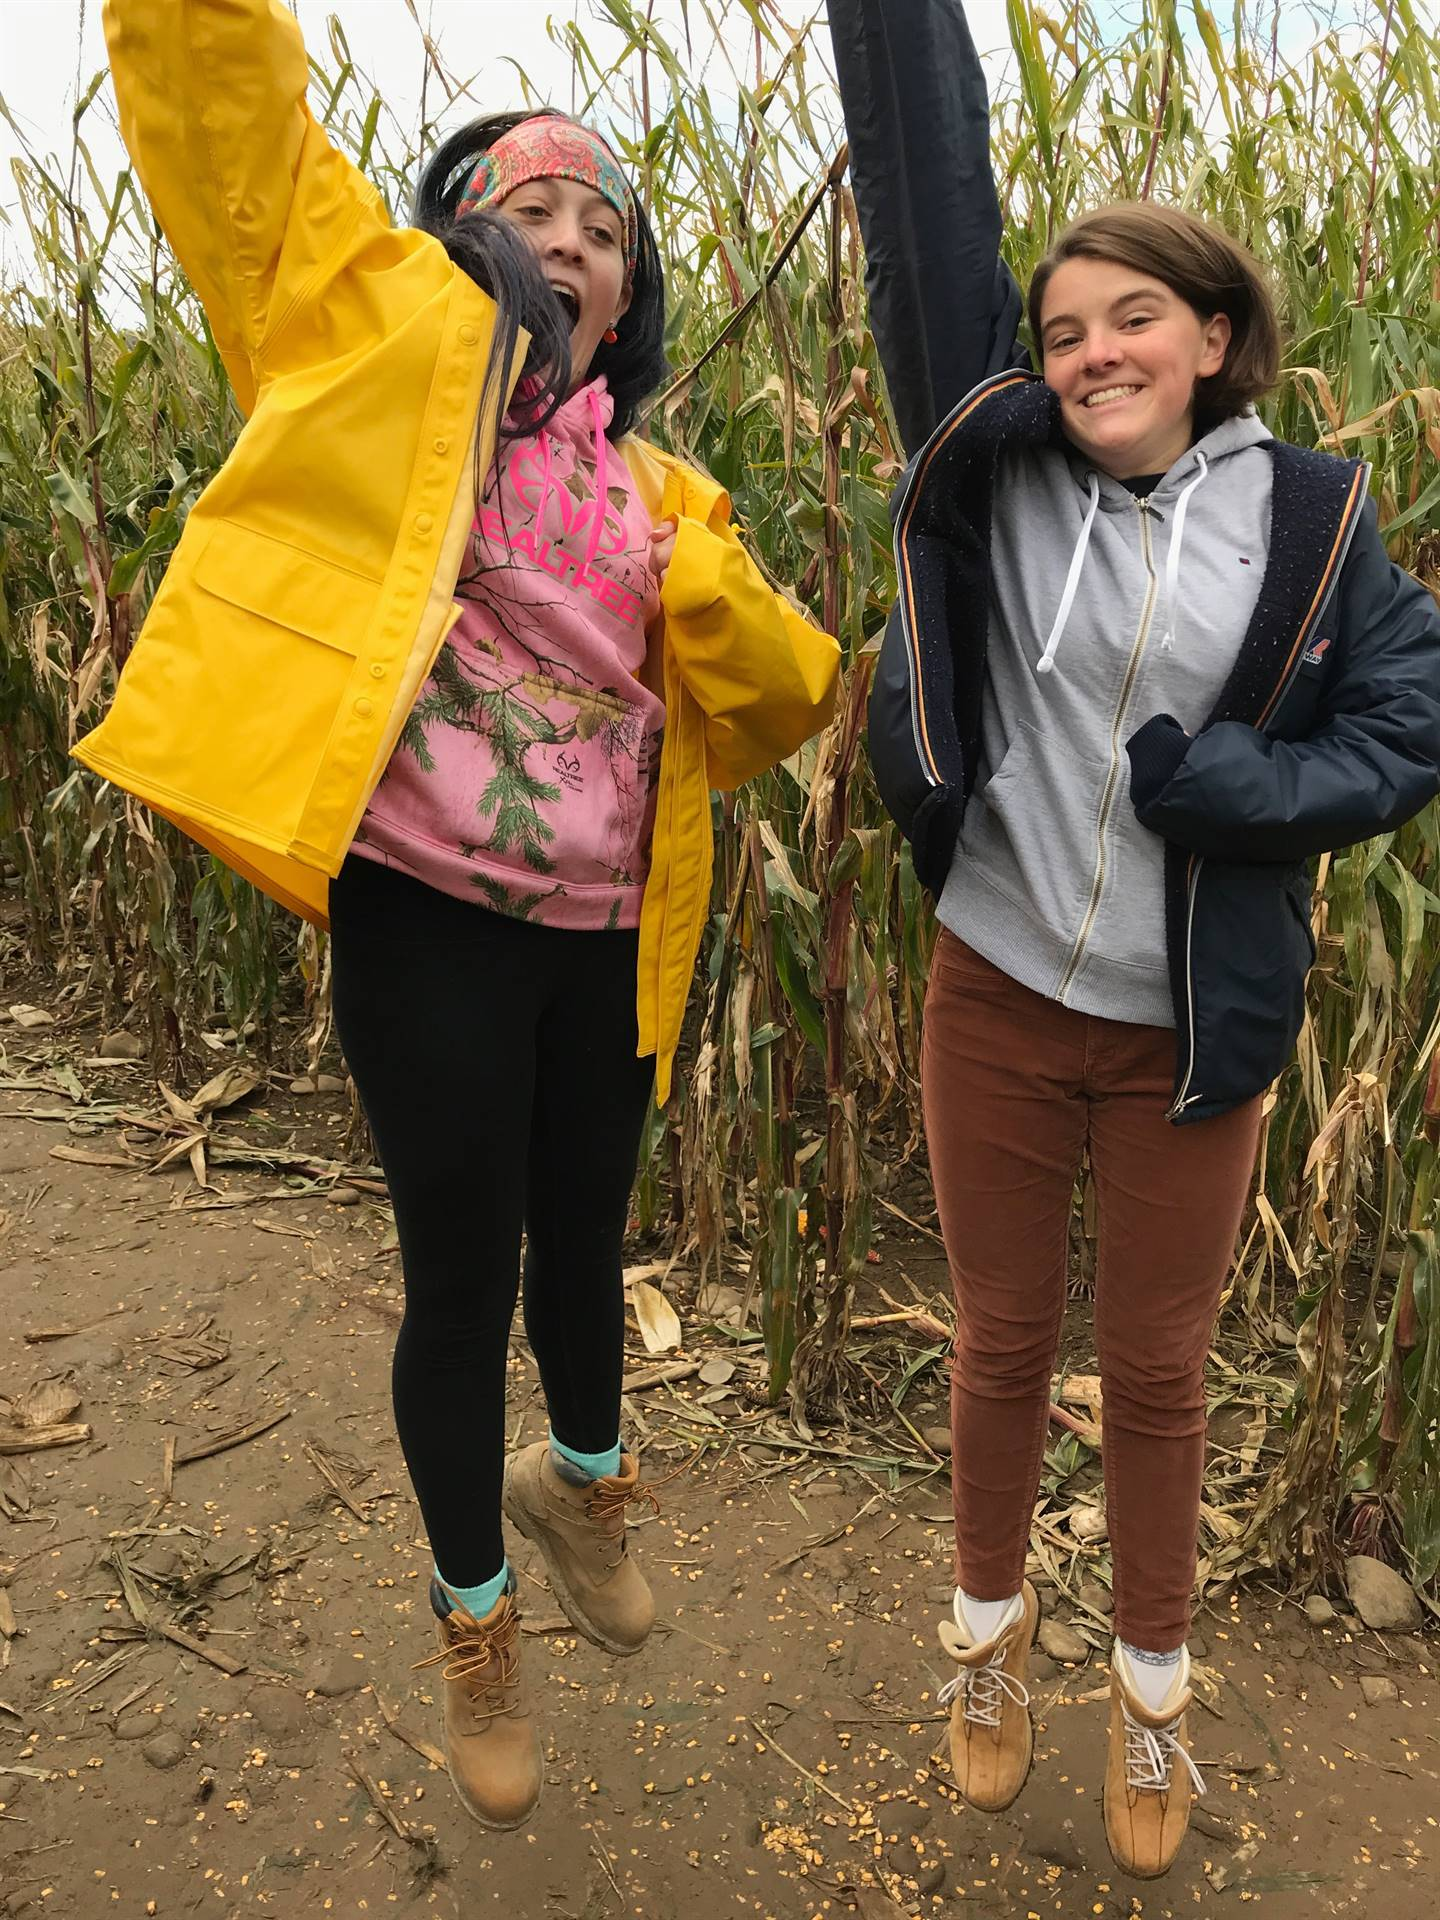 students jumping in corn maze